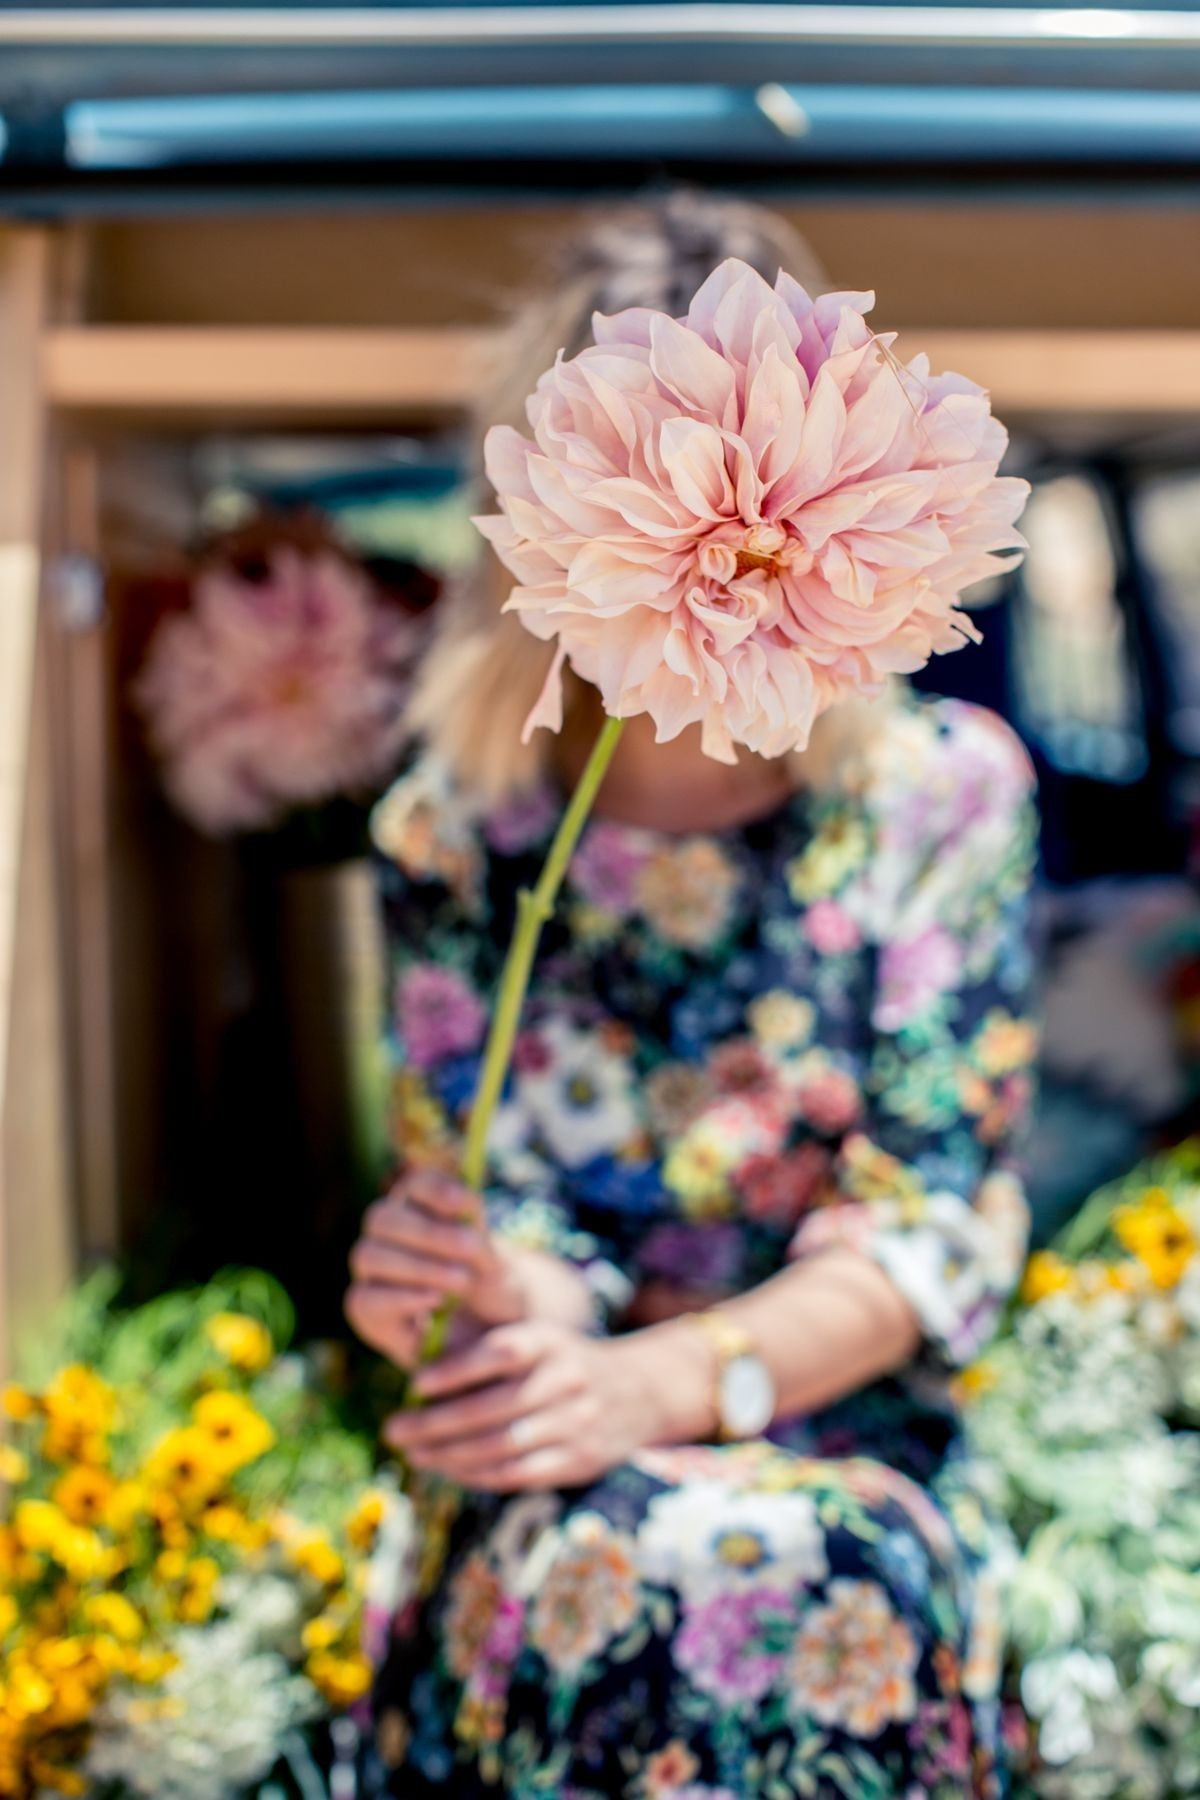 Pin by 𝒮𝒾𝓂𝓅𝓁𝓎 𝒢𝓇𝒶𝒸𝑒 on quelquesfleurs Flower farm